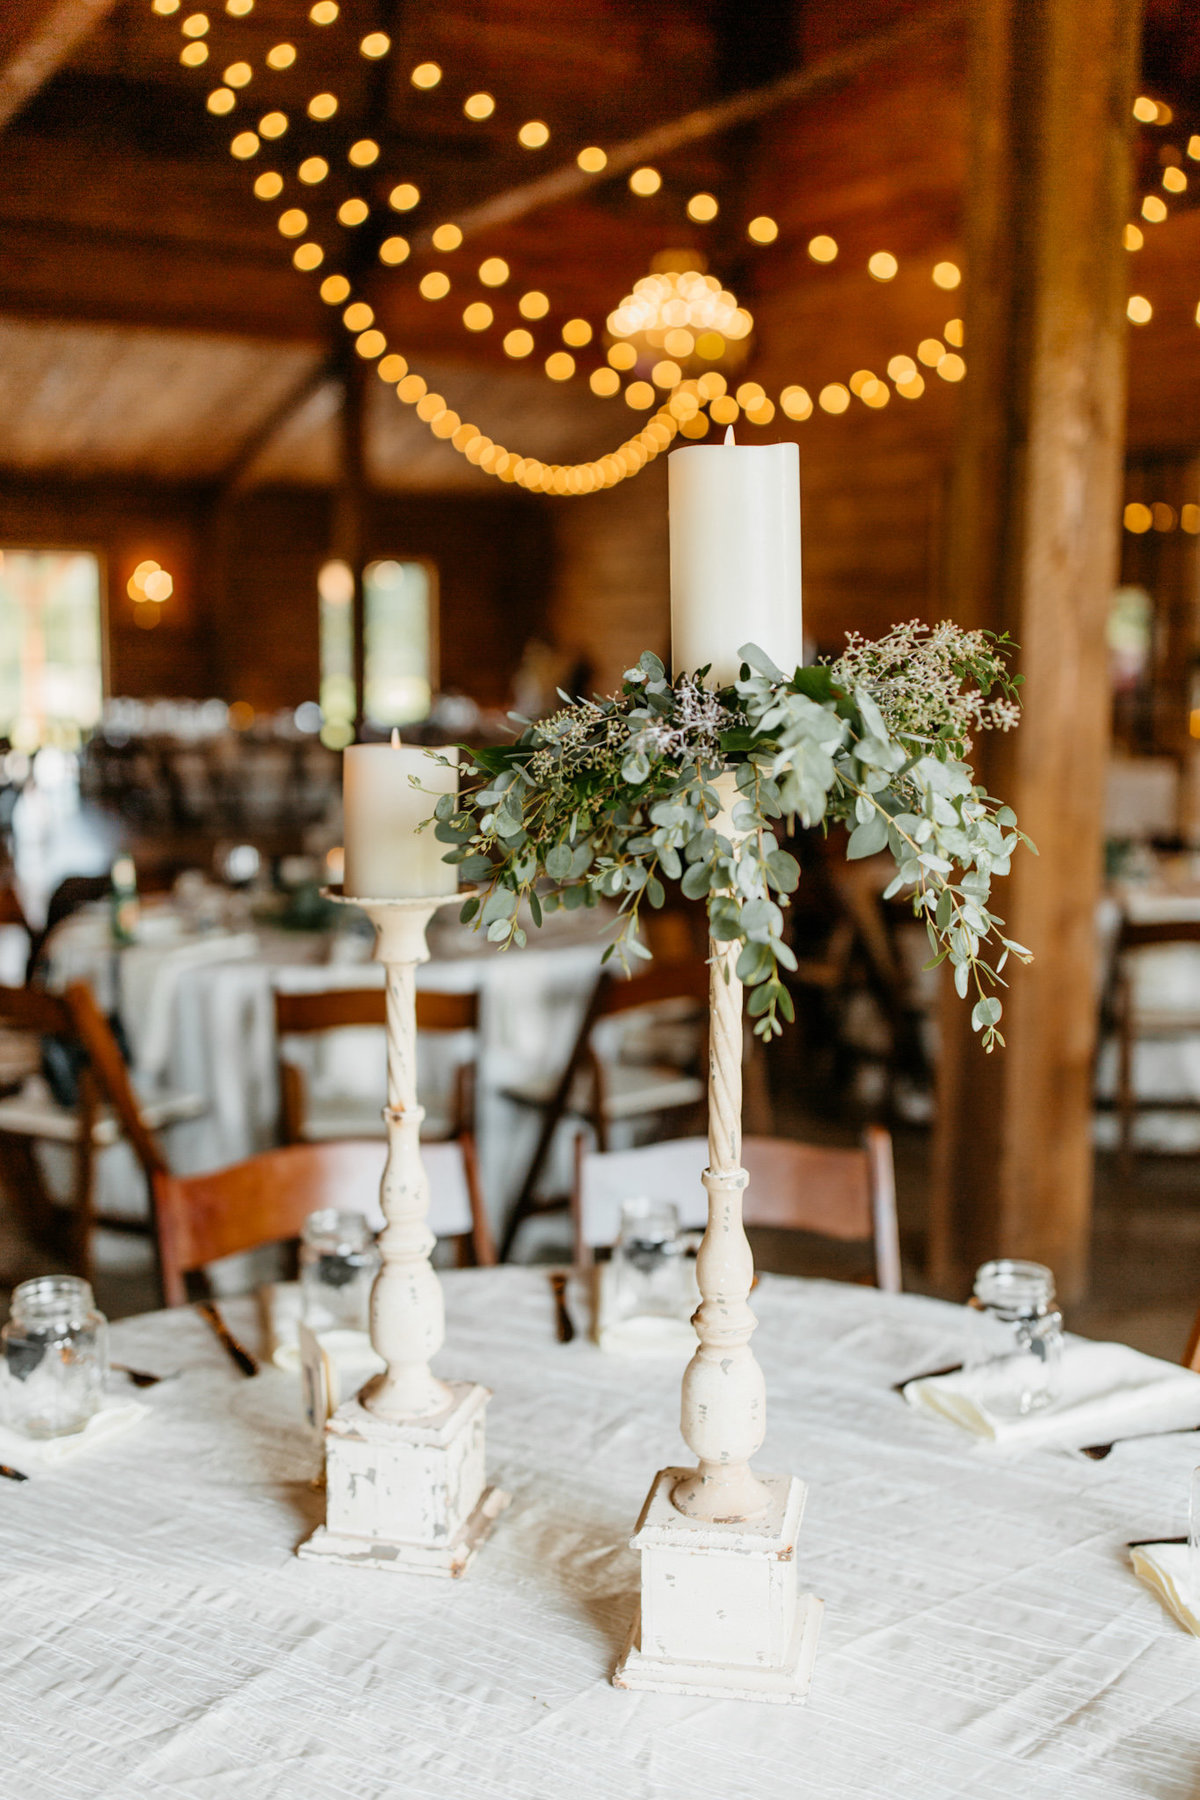 Alexa-Vossler-Photo_Dallas-Wedding-Photographer_North-Texas-Wedding-Photographer_Stephanie-Chase-Wedding-at-Morgan-Creek-Barn-Aubrey-Texas_113